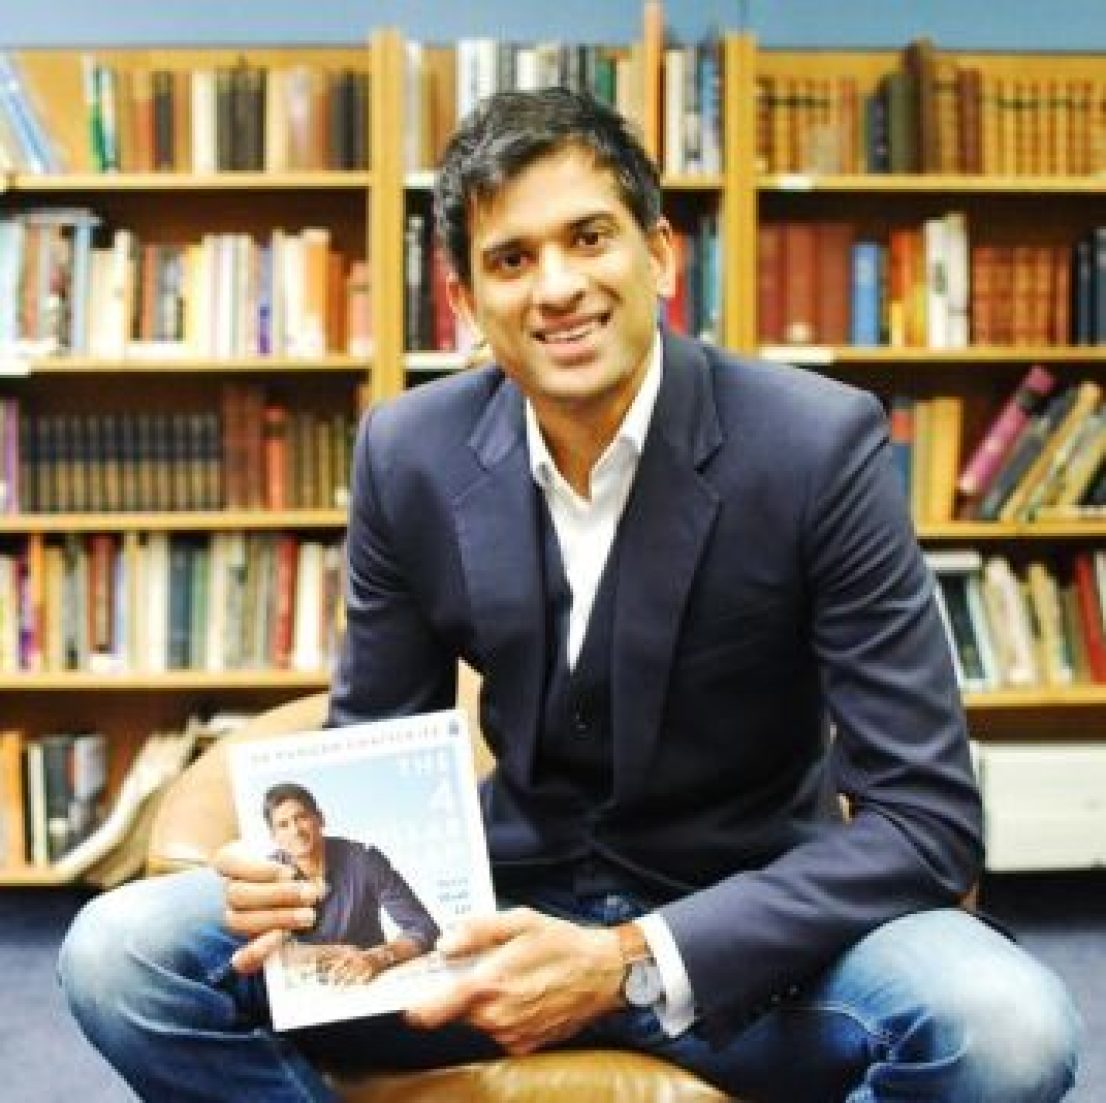 Dr Rangan Chatterjee with his new book